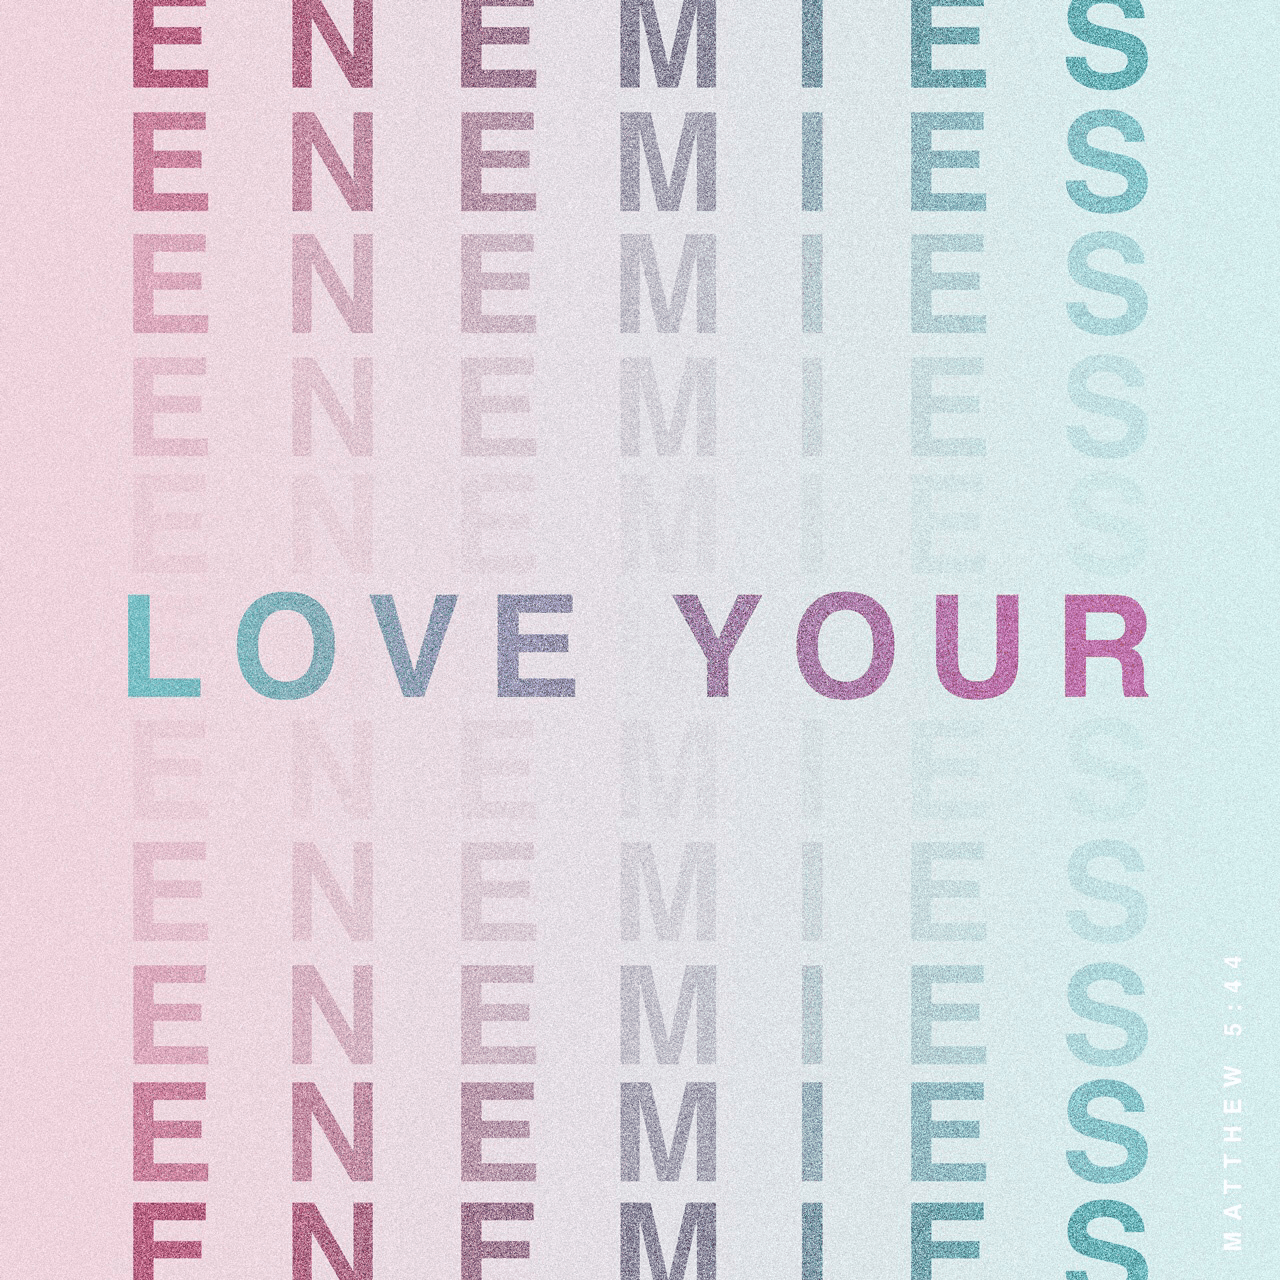 """VOTD October 26 - """"But I say to you, love your enemies and pray for those who persecute you,"""" Matthew 5:44 NASB"""